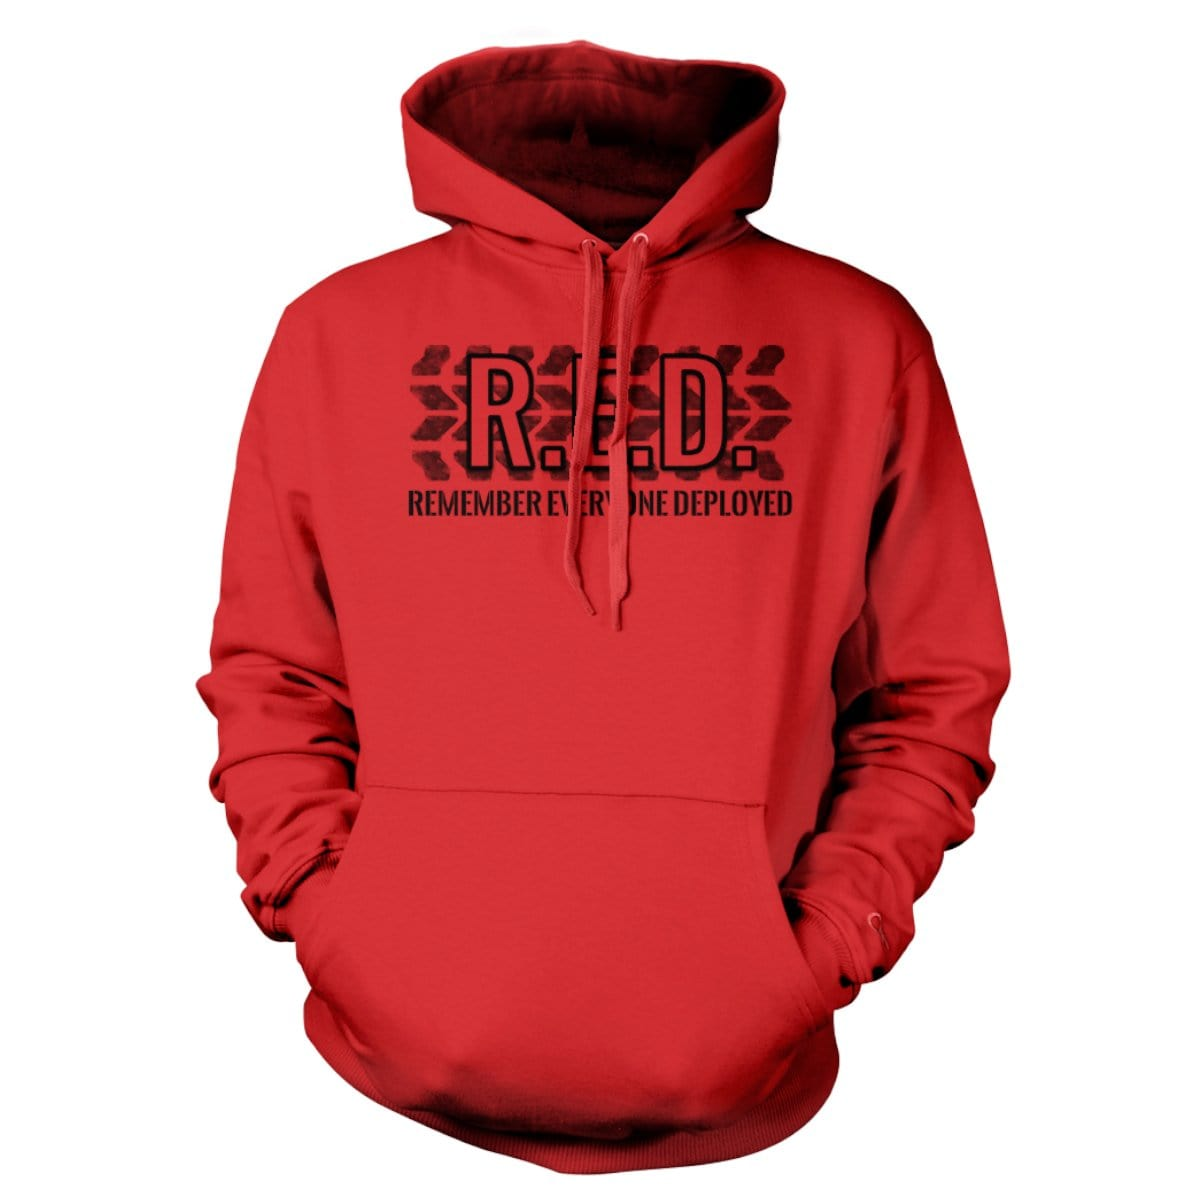 R.E.D. Hoodie - Red - Hoodies - Pipe Hitters Union